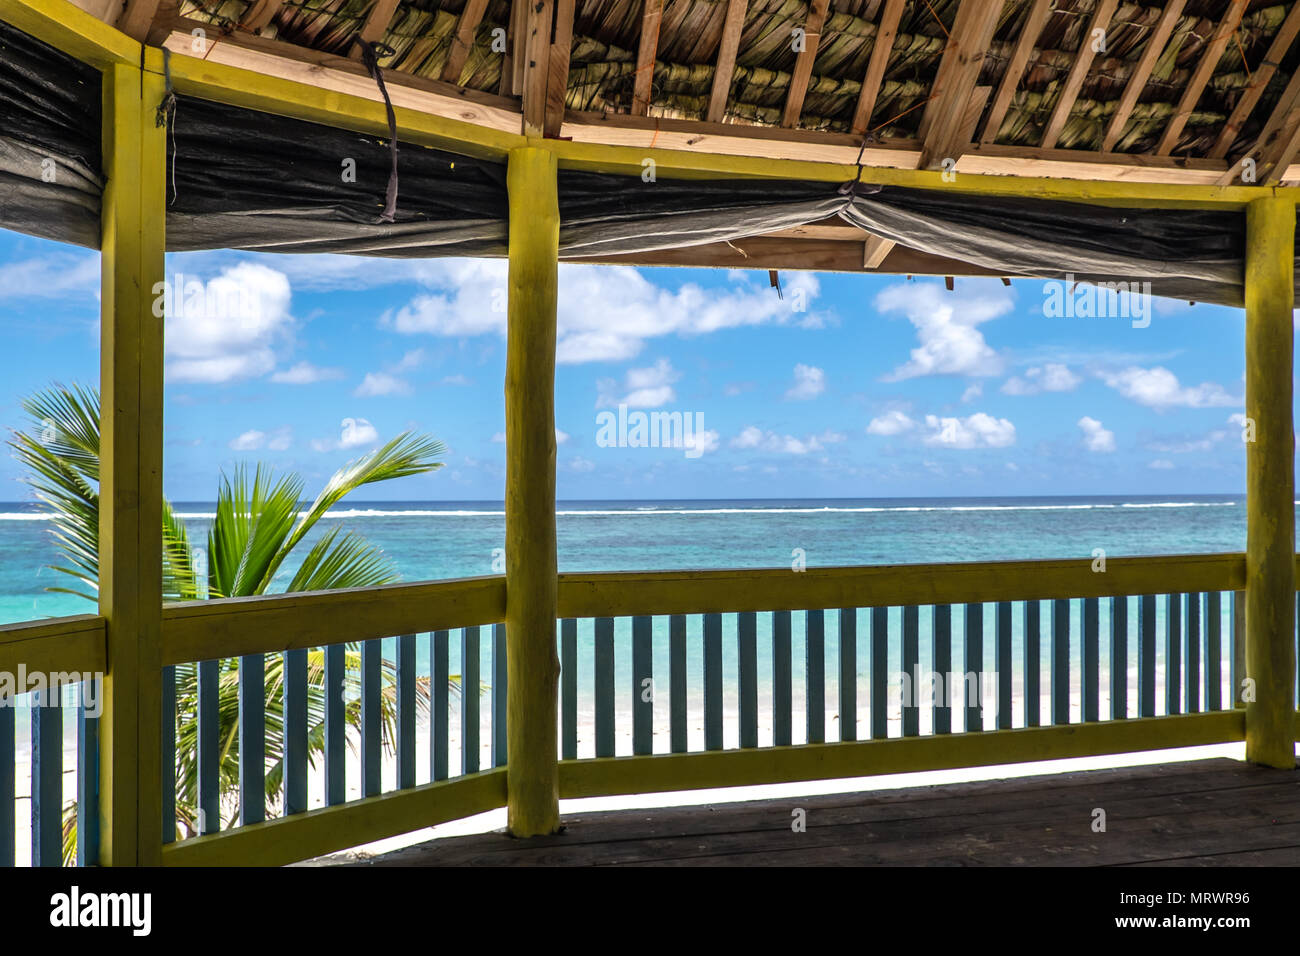 Lalomanu Beach, Upolu Island, Samoa - October 27, 2017: View from inside a traditional waterfront beach fale hut onto the blue Pacific Ocean. - Stock Image